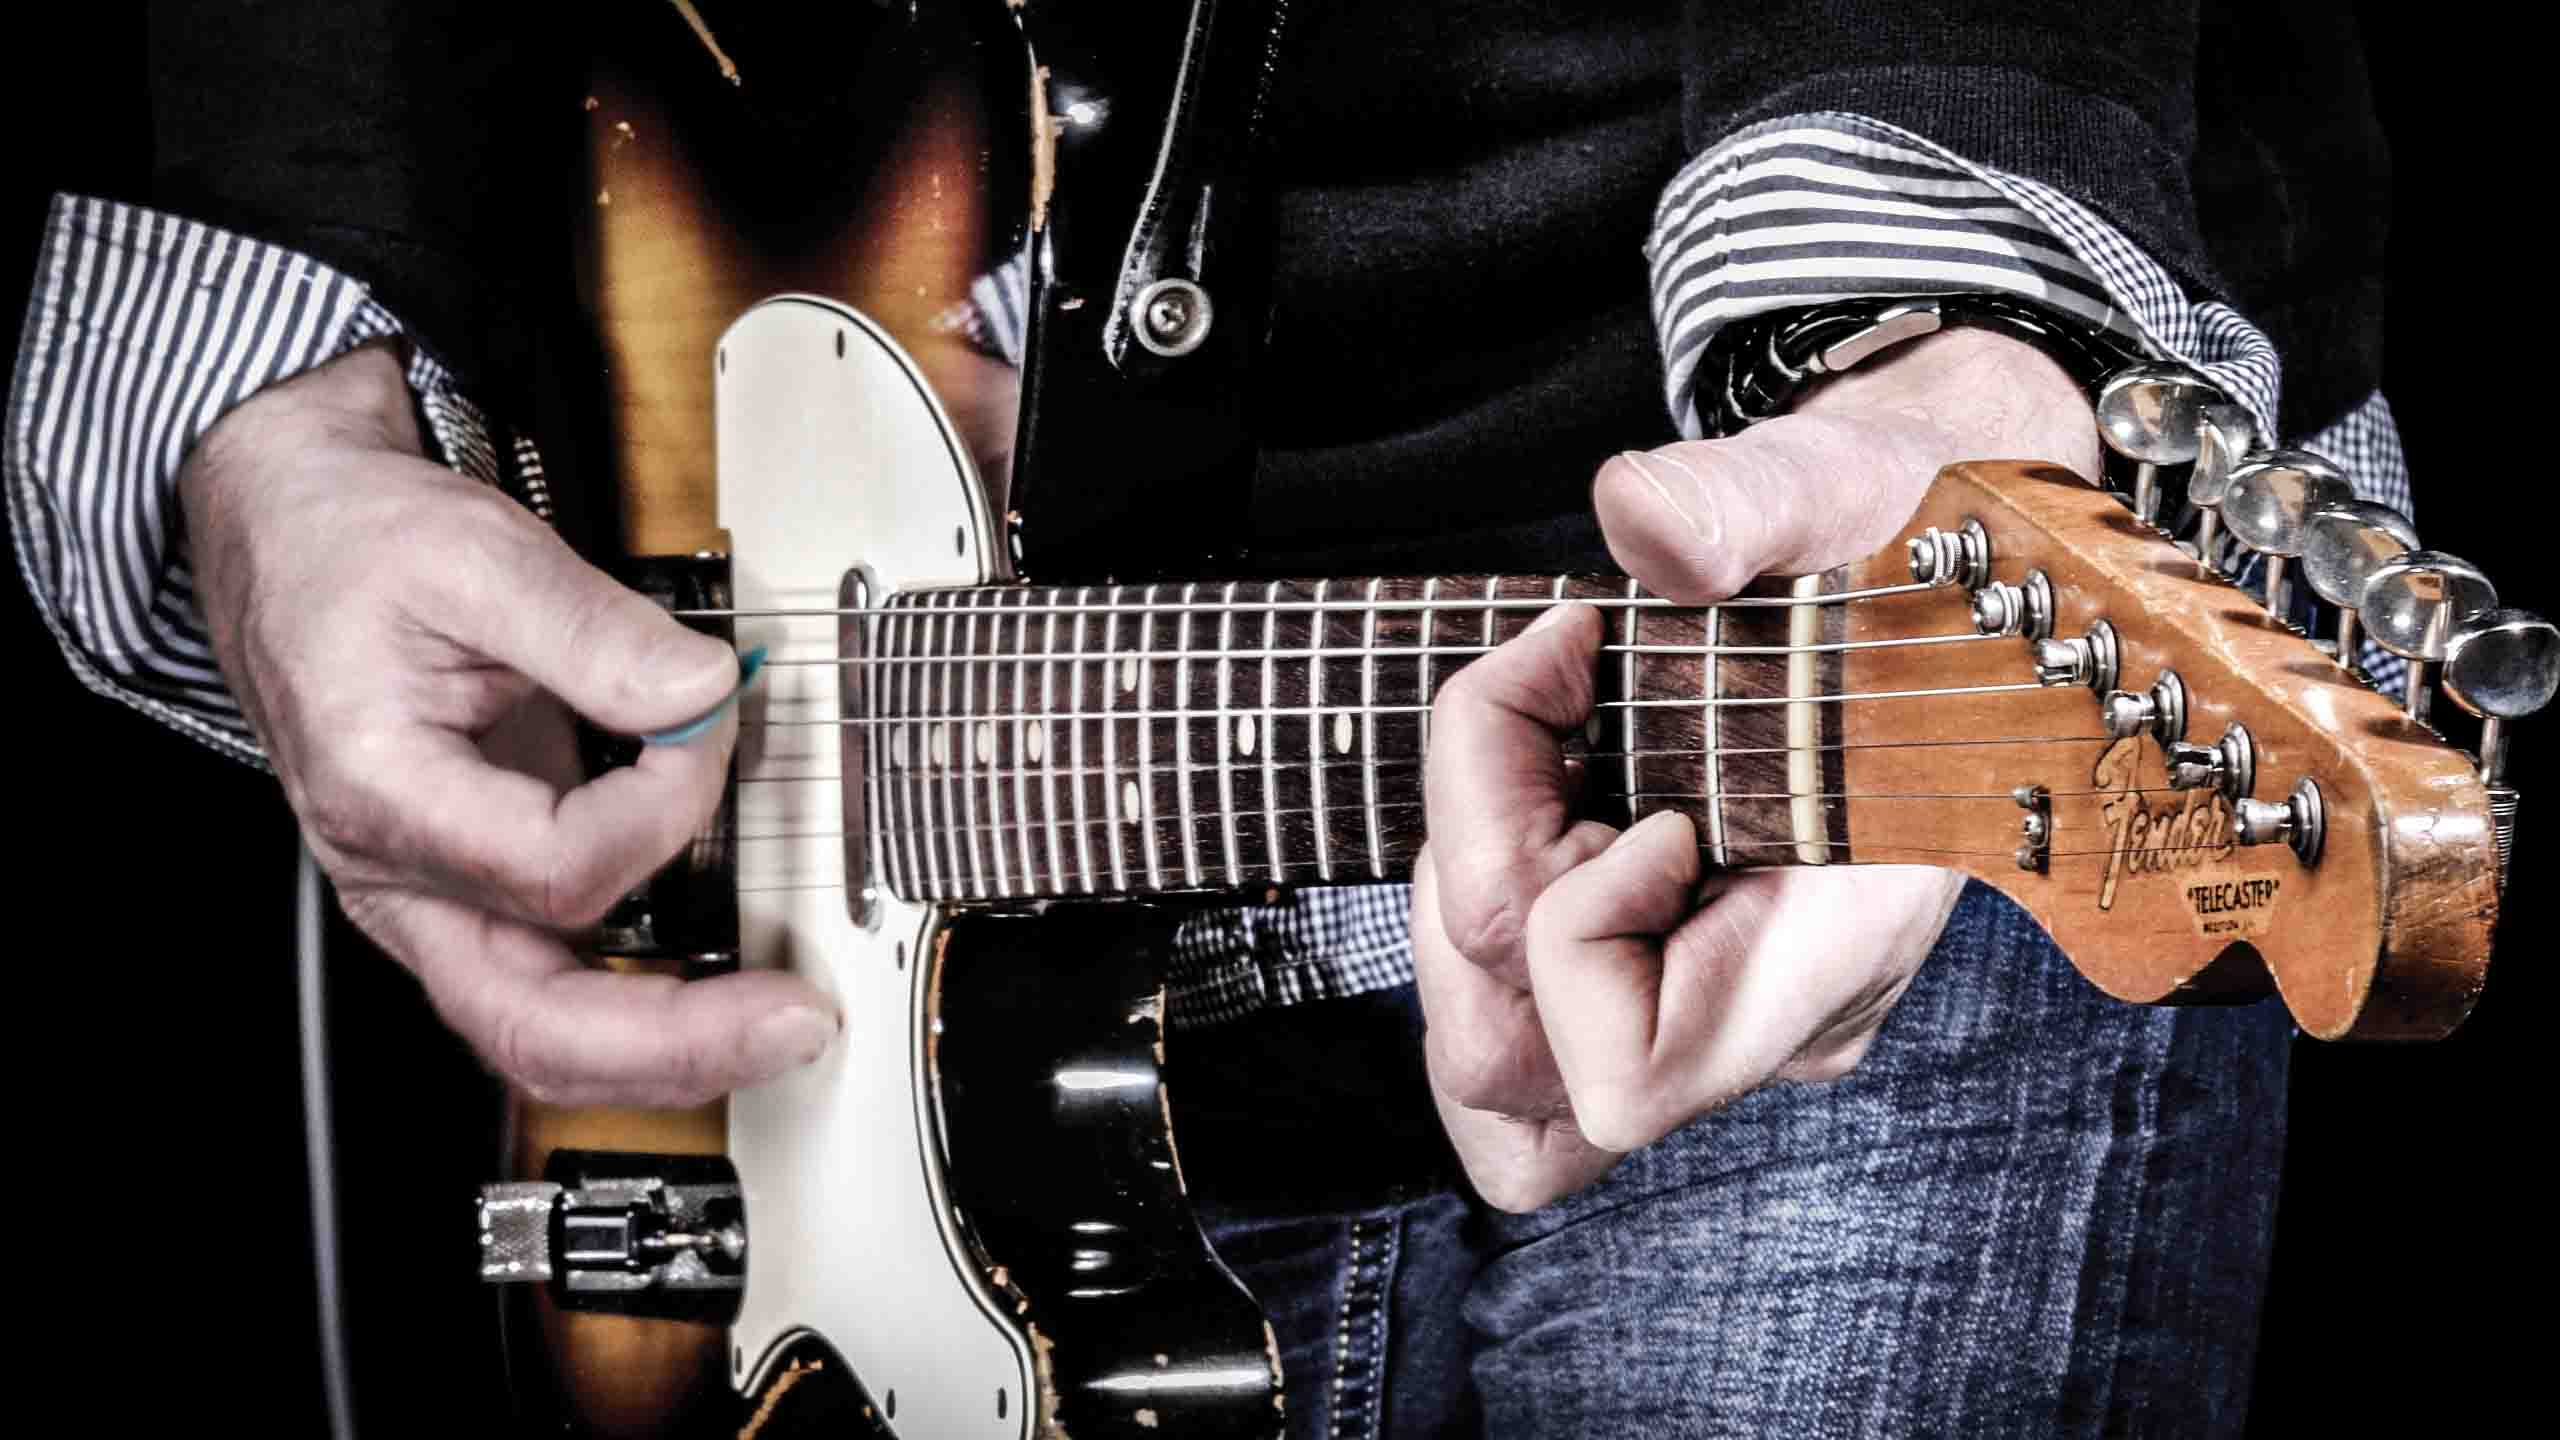 Revitalise Your 12 Bar Blues Chords With These 5 Essential Tips